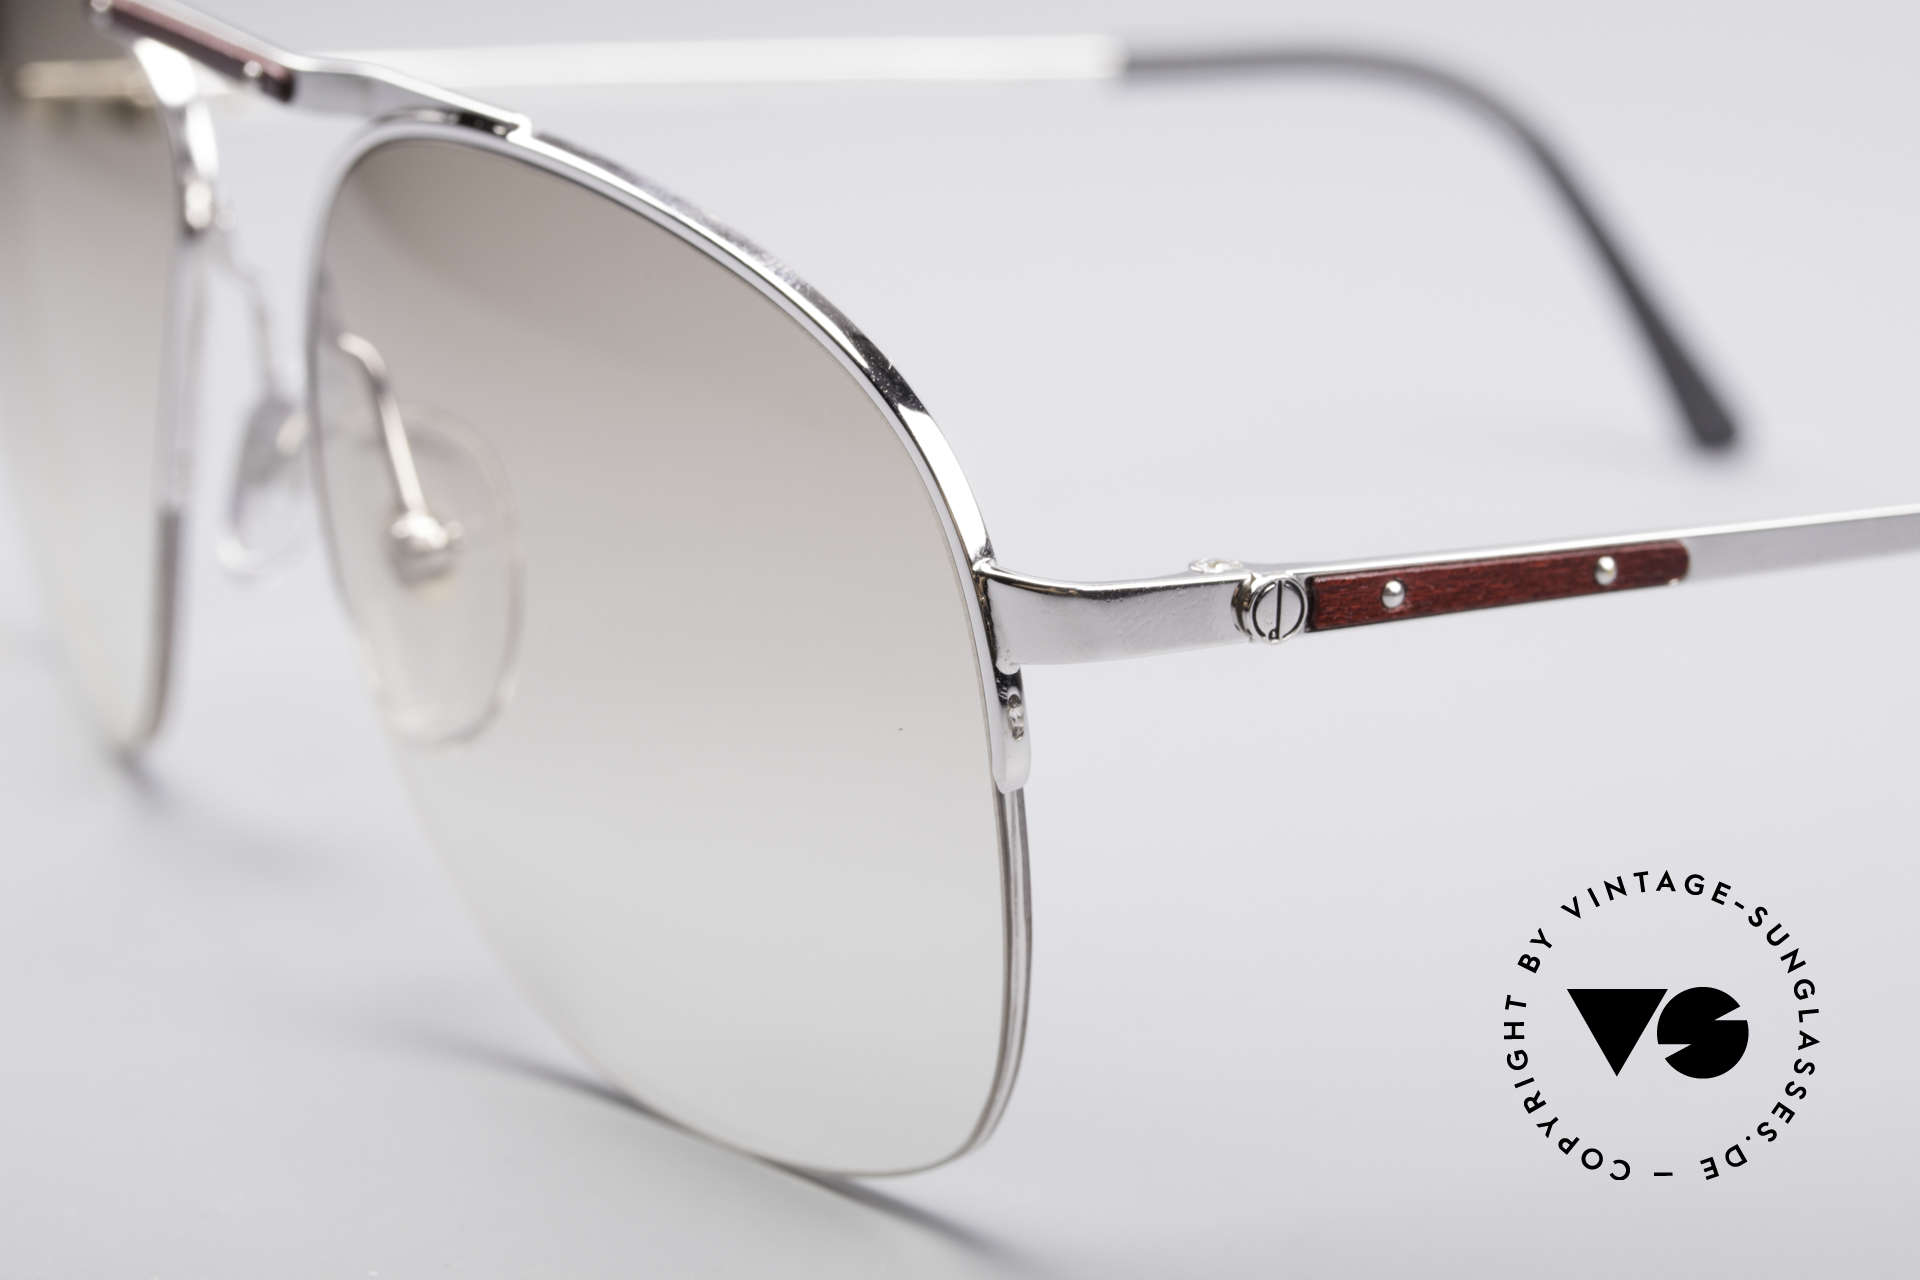 Dunhill 6022 80's Gentlemen's Frame, semi rimless (lightweight and very pleasant to wear), Made for Men